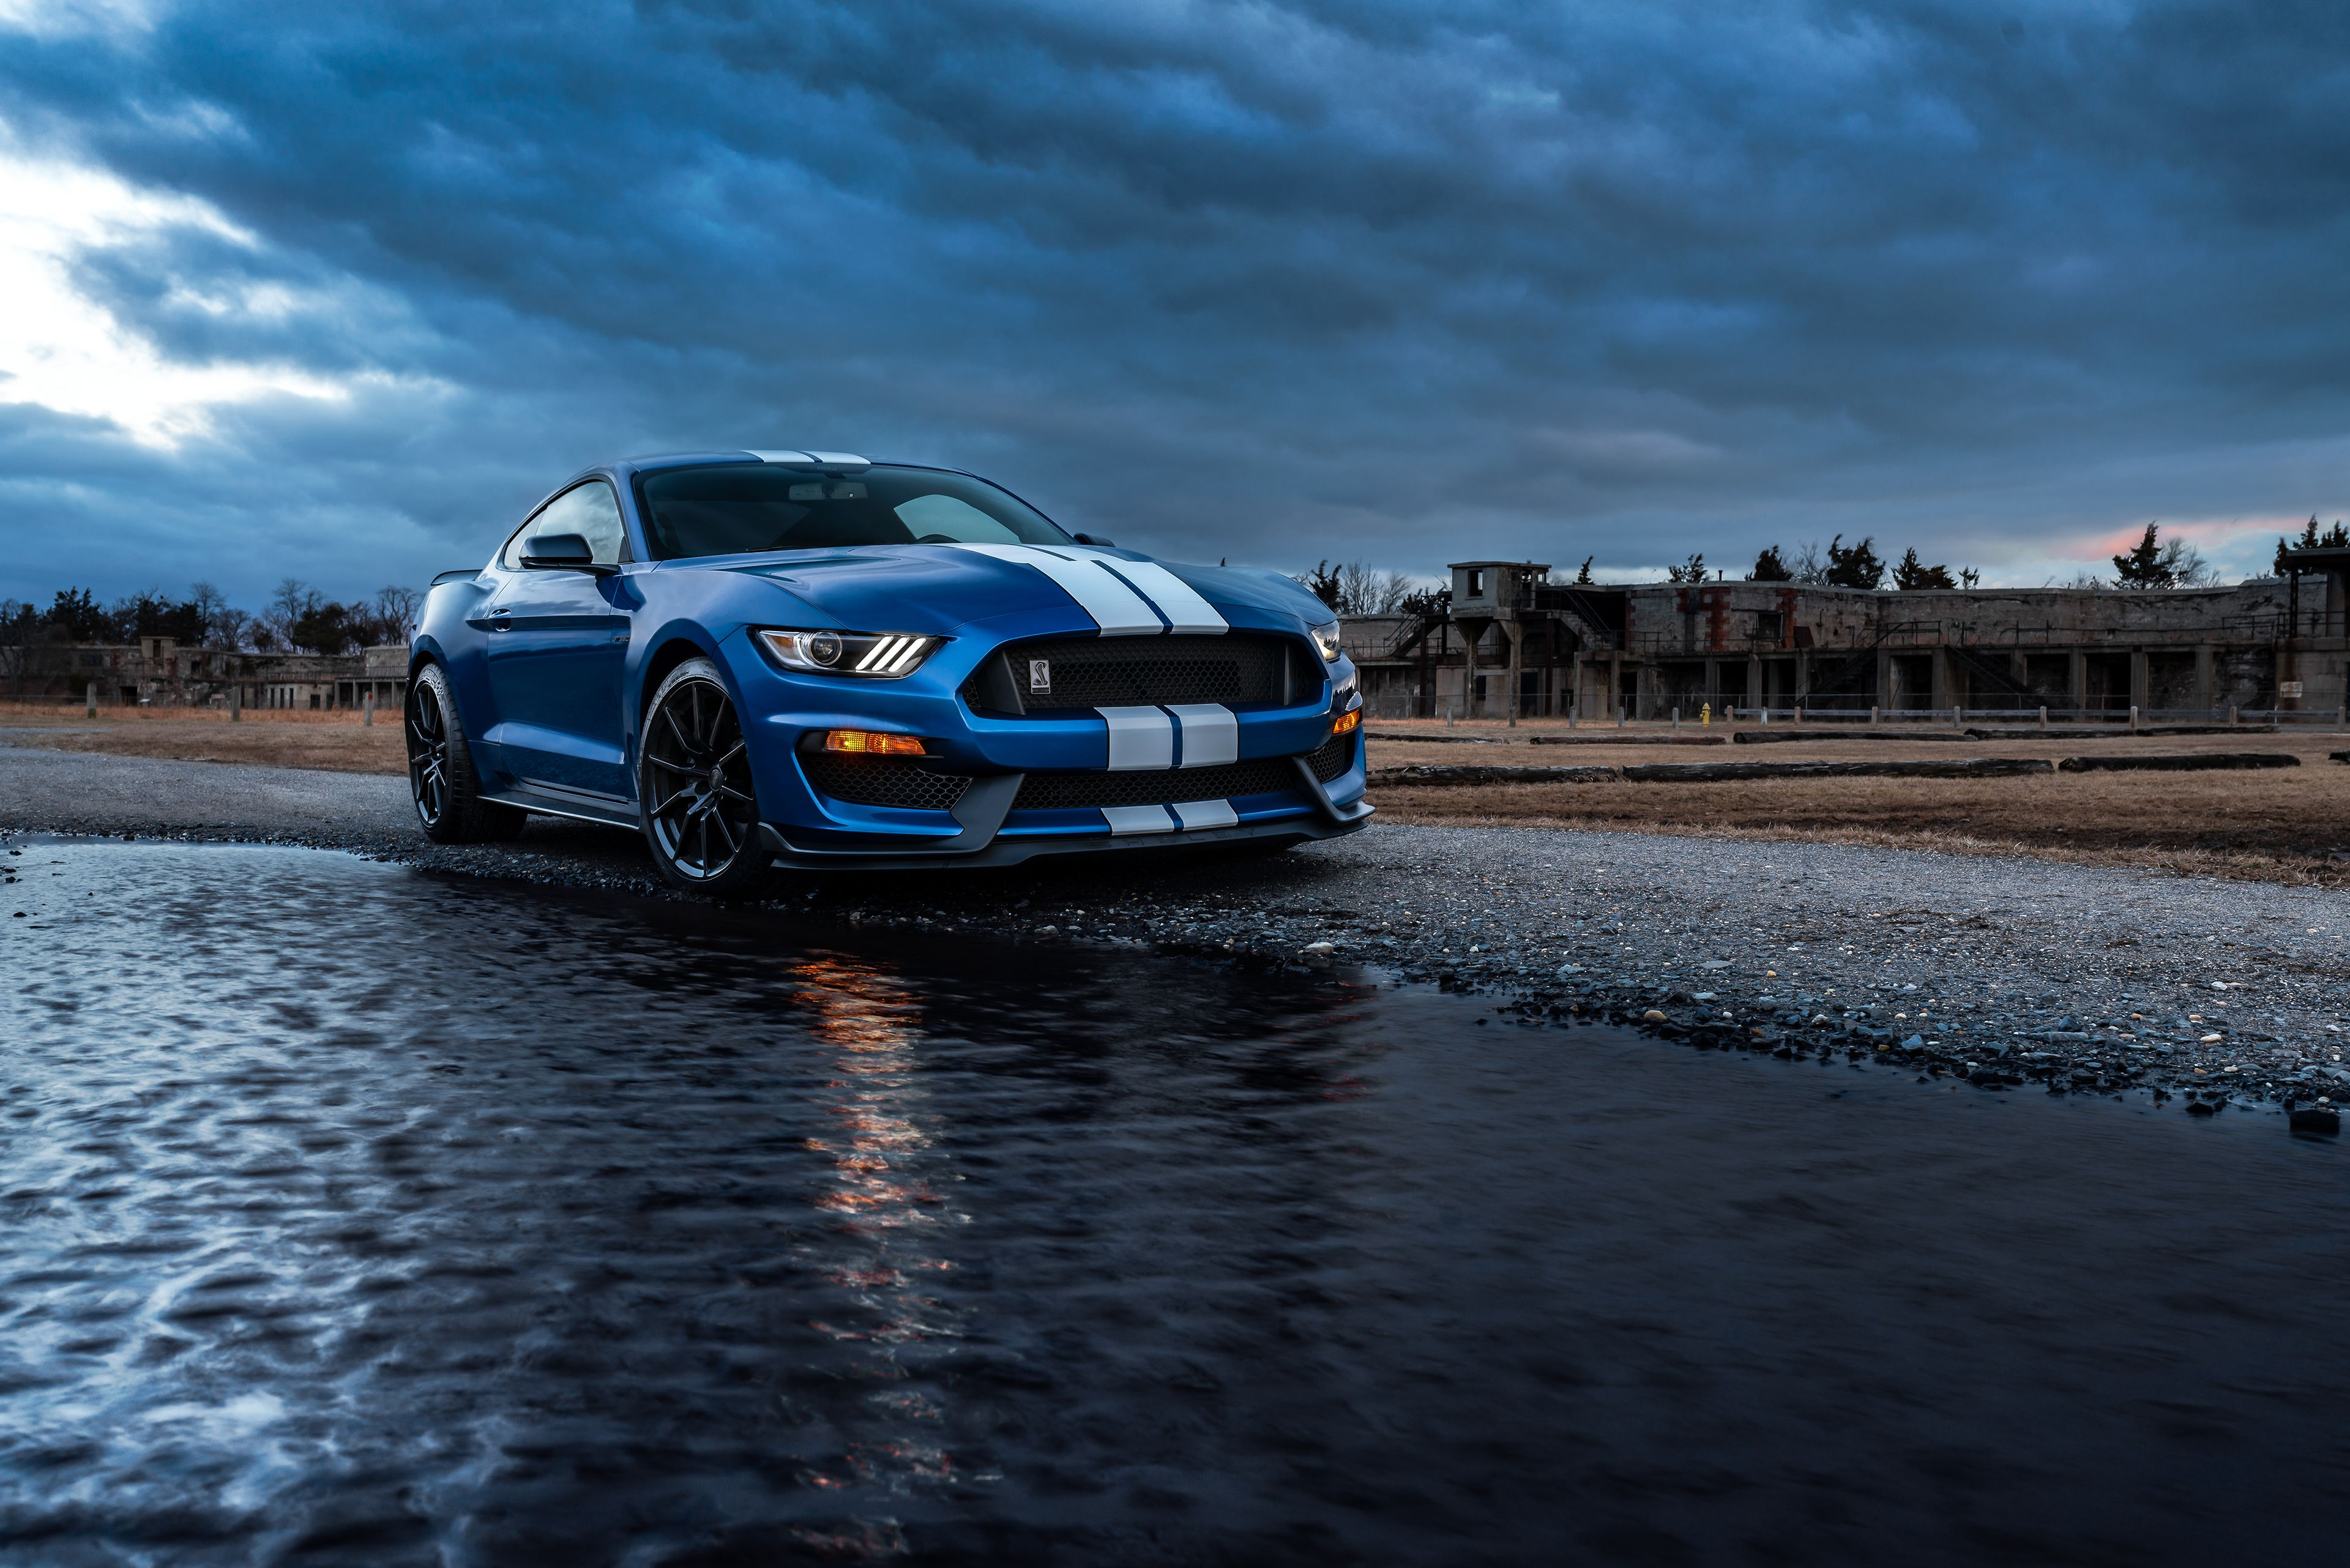 Ford Mustang Shelby Gt500 River 4k Ford Mustang Shelby Gt500 River 4k Wallpapers Ford Mustang Shelby Gt500 Shelby Gt500 Ford Mustang Shelby